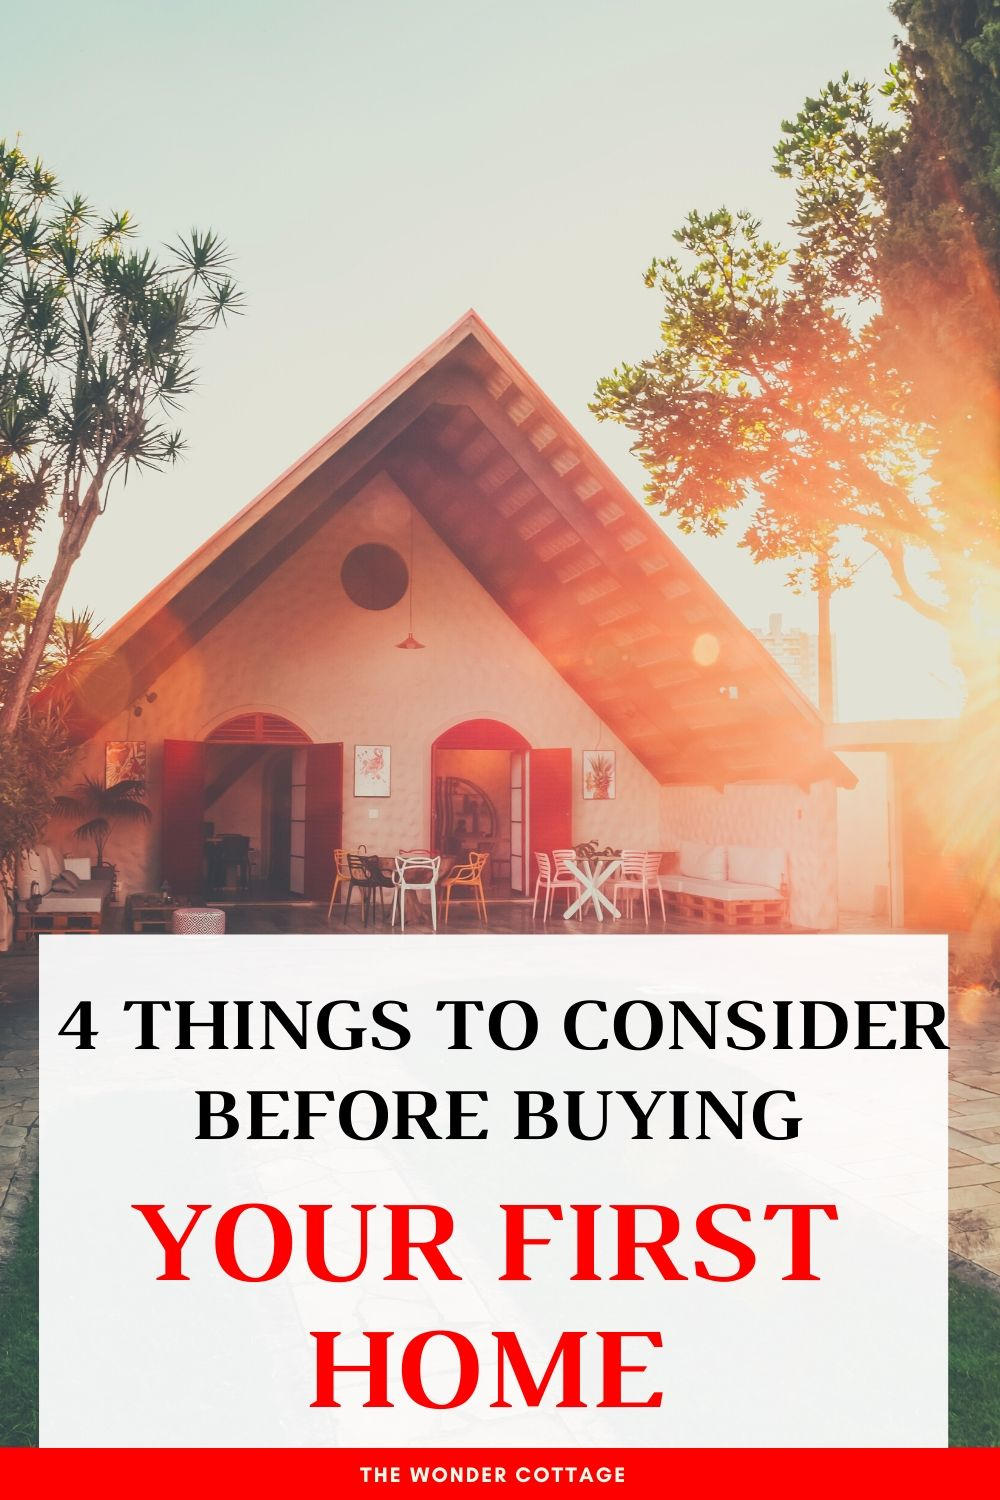 4 Things To Consider Before Buying Your First Home